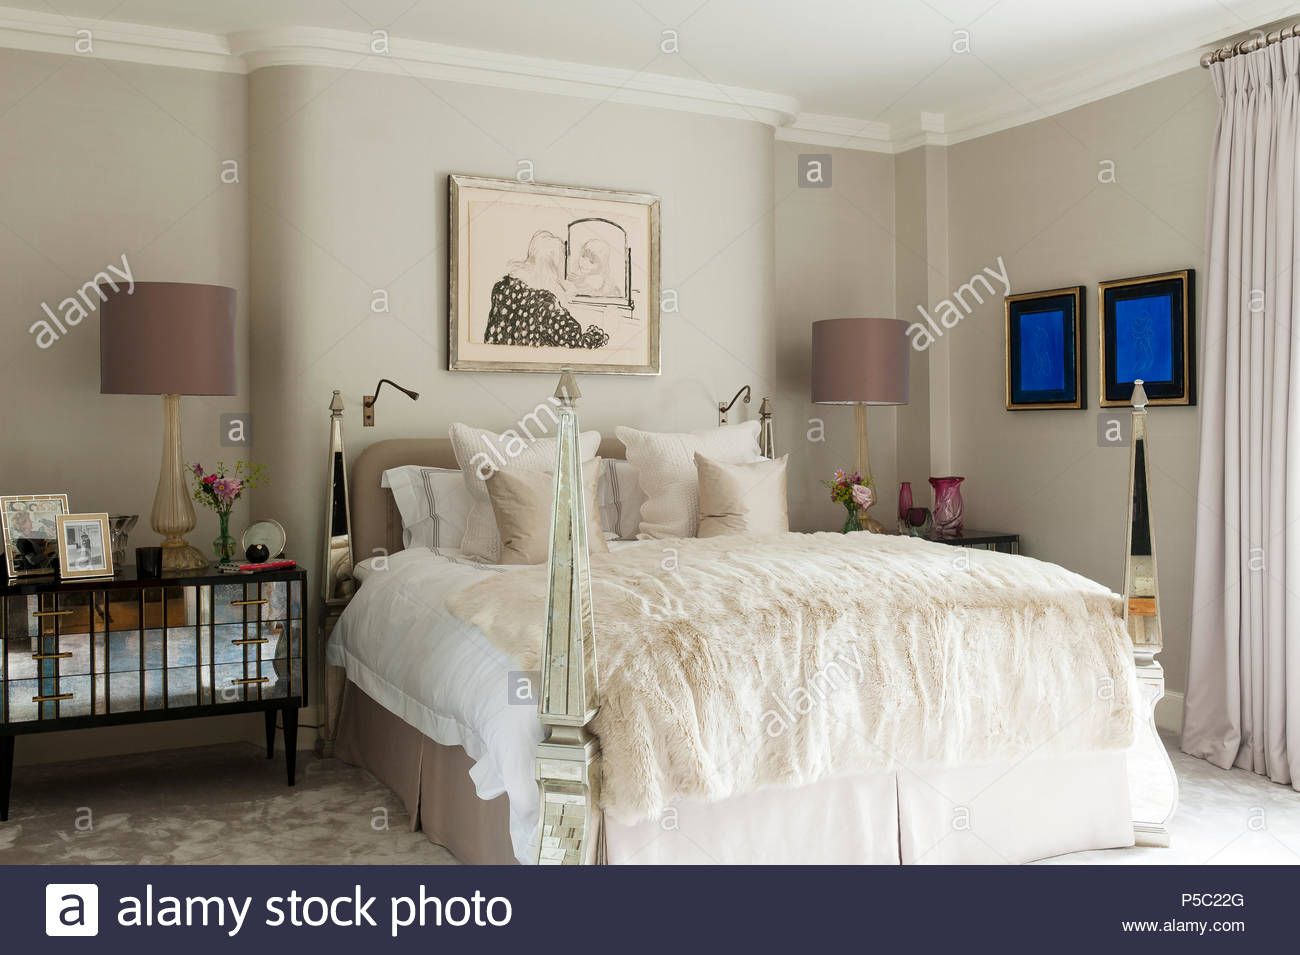 Four poster bed in country style bedroom - Stock Image